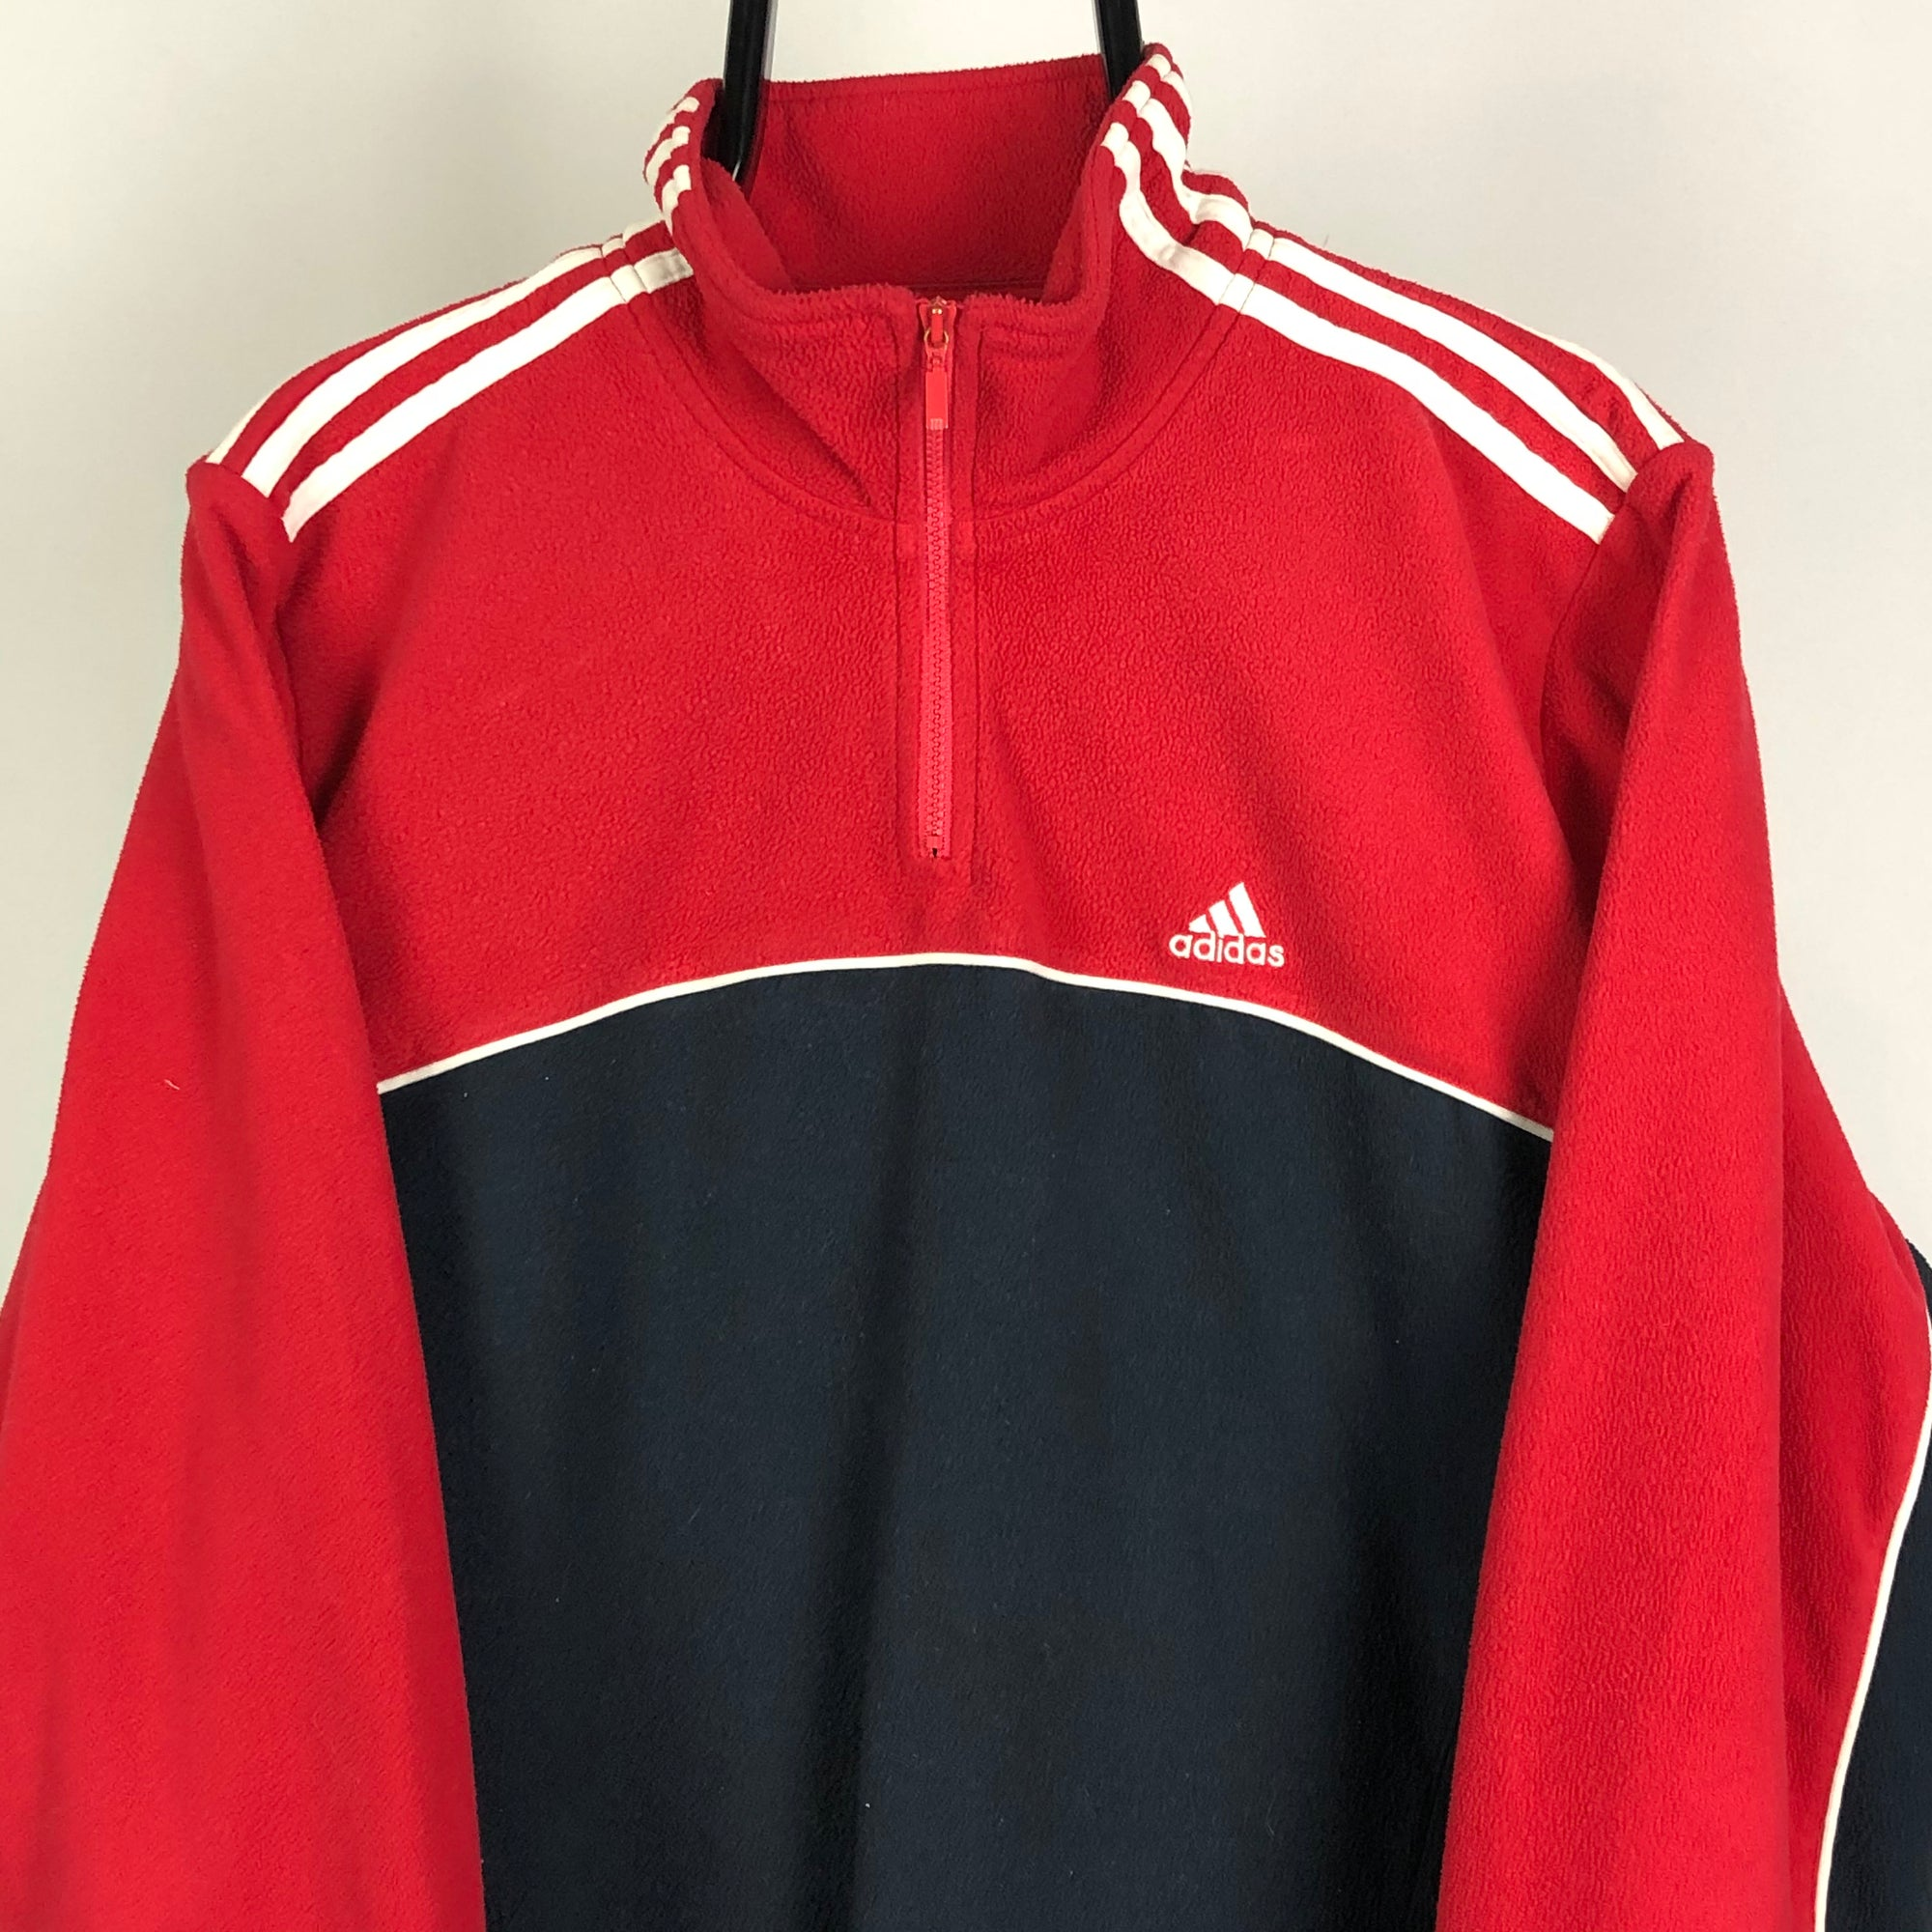 Vintage Adidas Fleece in Navy/Red - Men's Medium/Women's Large